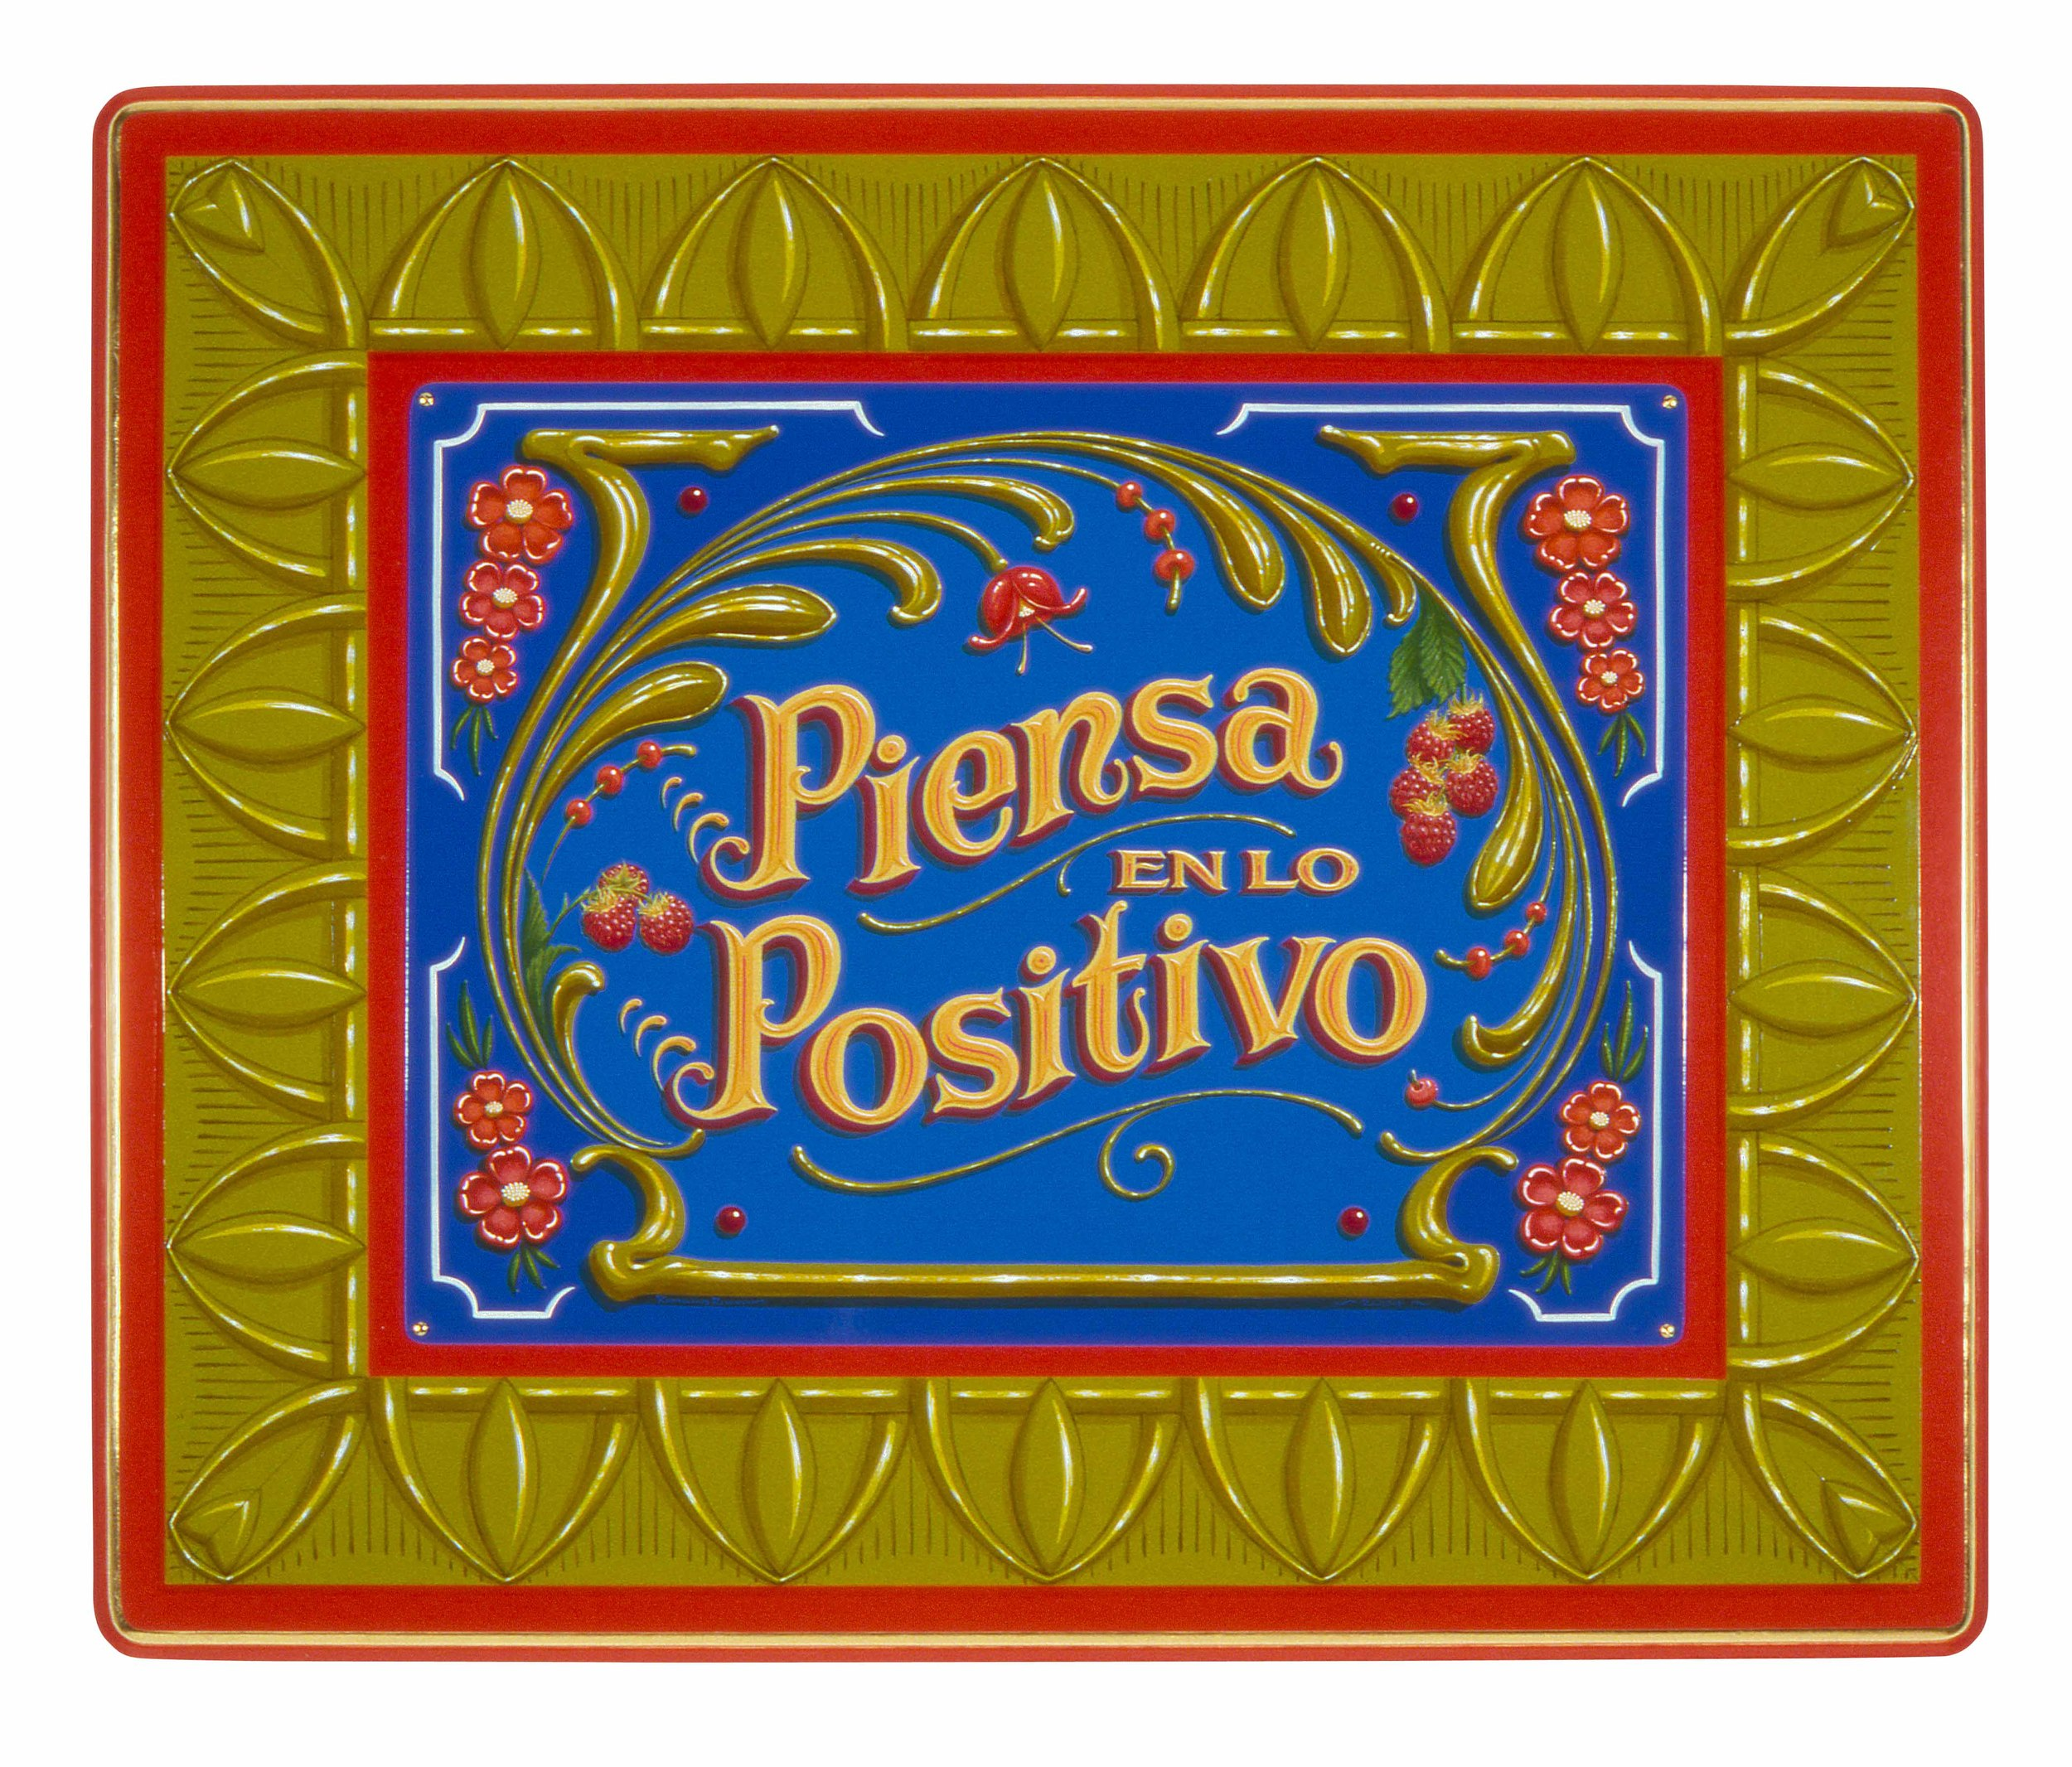 "Piensa en lo Positivo   2004, Oil alkyd painting on aluminum and wood panel with 23k gilding  19"" x 24"" x 1.5"""